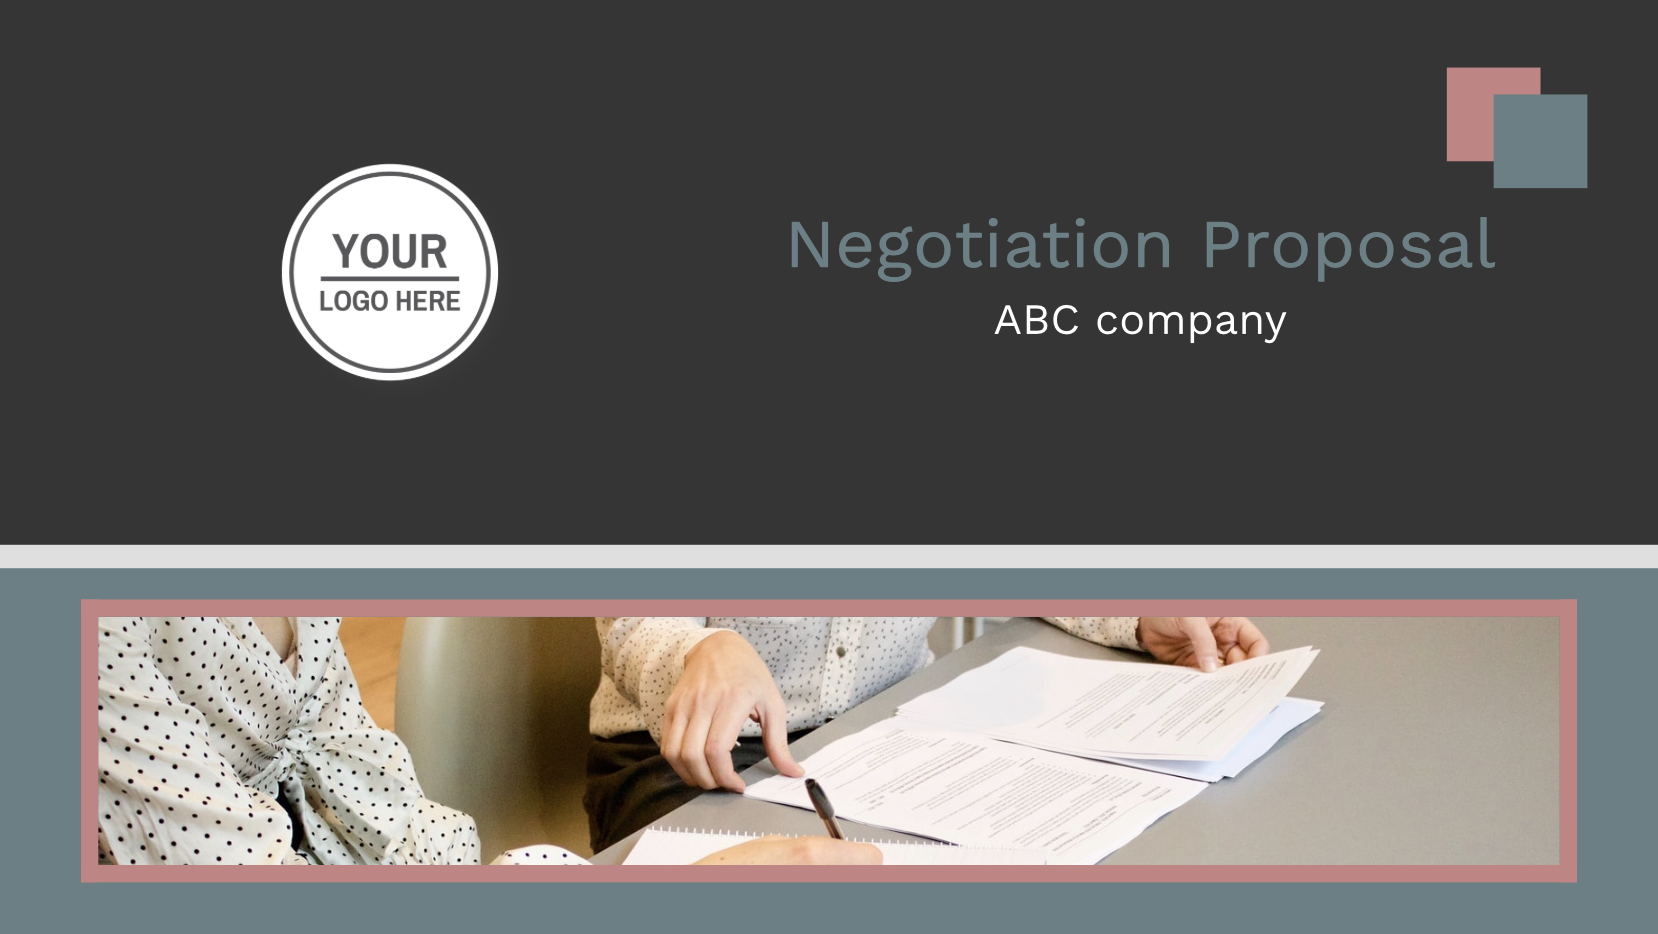 A negotiation proposal is a document that can be used to report a negotiation offer to a customer or to a supervisor. The negotiation proposal should provide an easy-to-understand agreement with all specifics in both cases. This proposal template is a good starting point when creating a sales-related document for salespeople. Start working on your document right away!